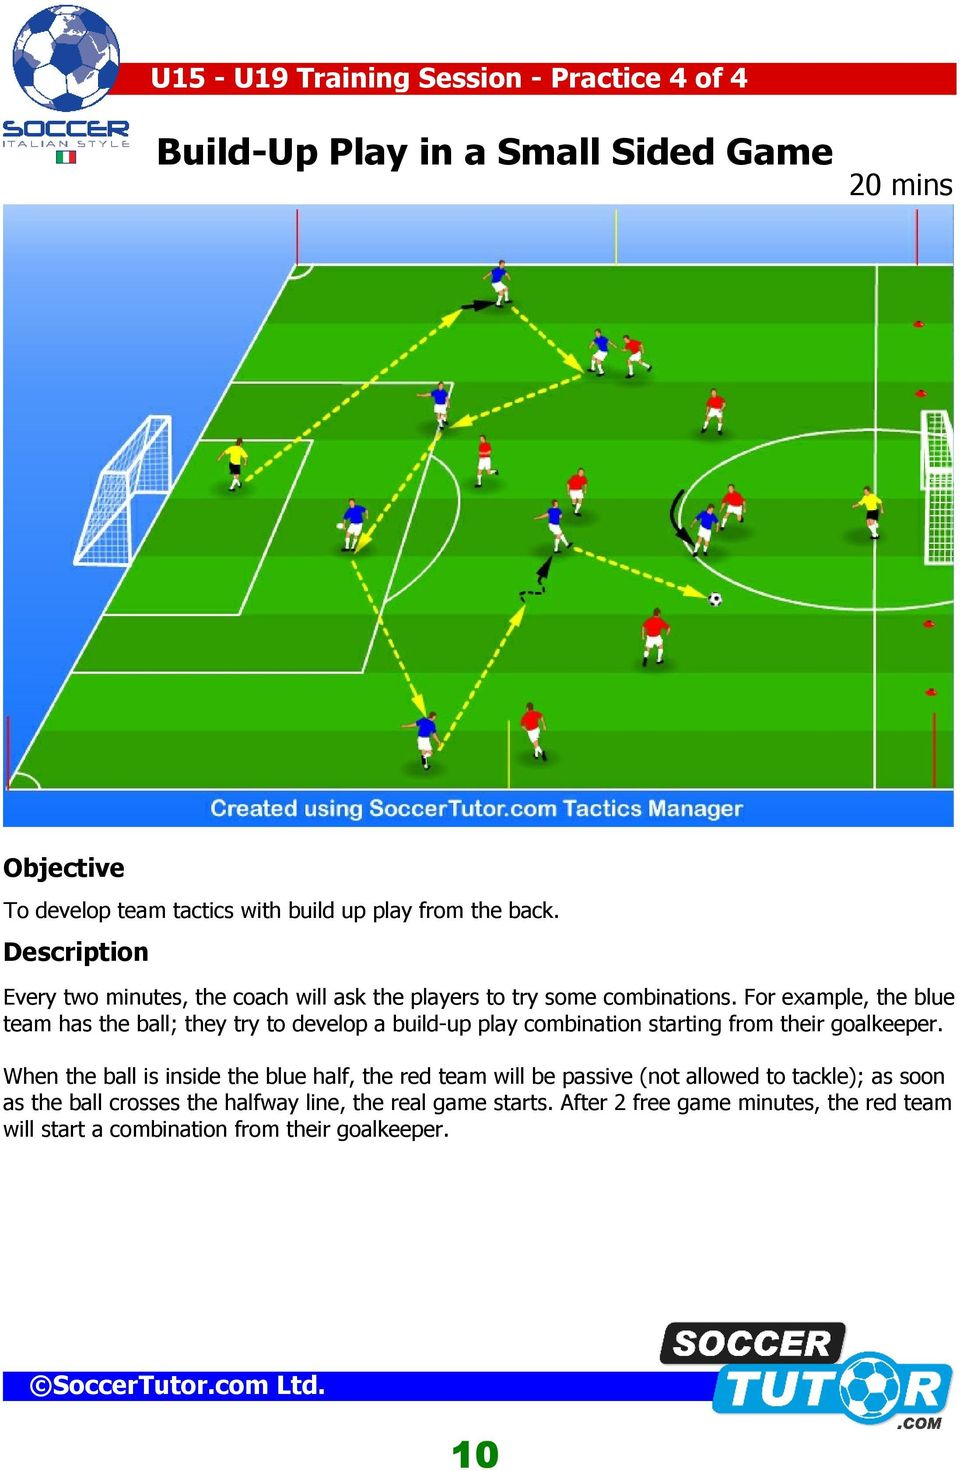 For example, the blue team has the ball; they try to develop a build-up play combination starting from their goalkeeper.